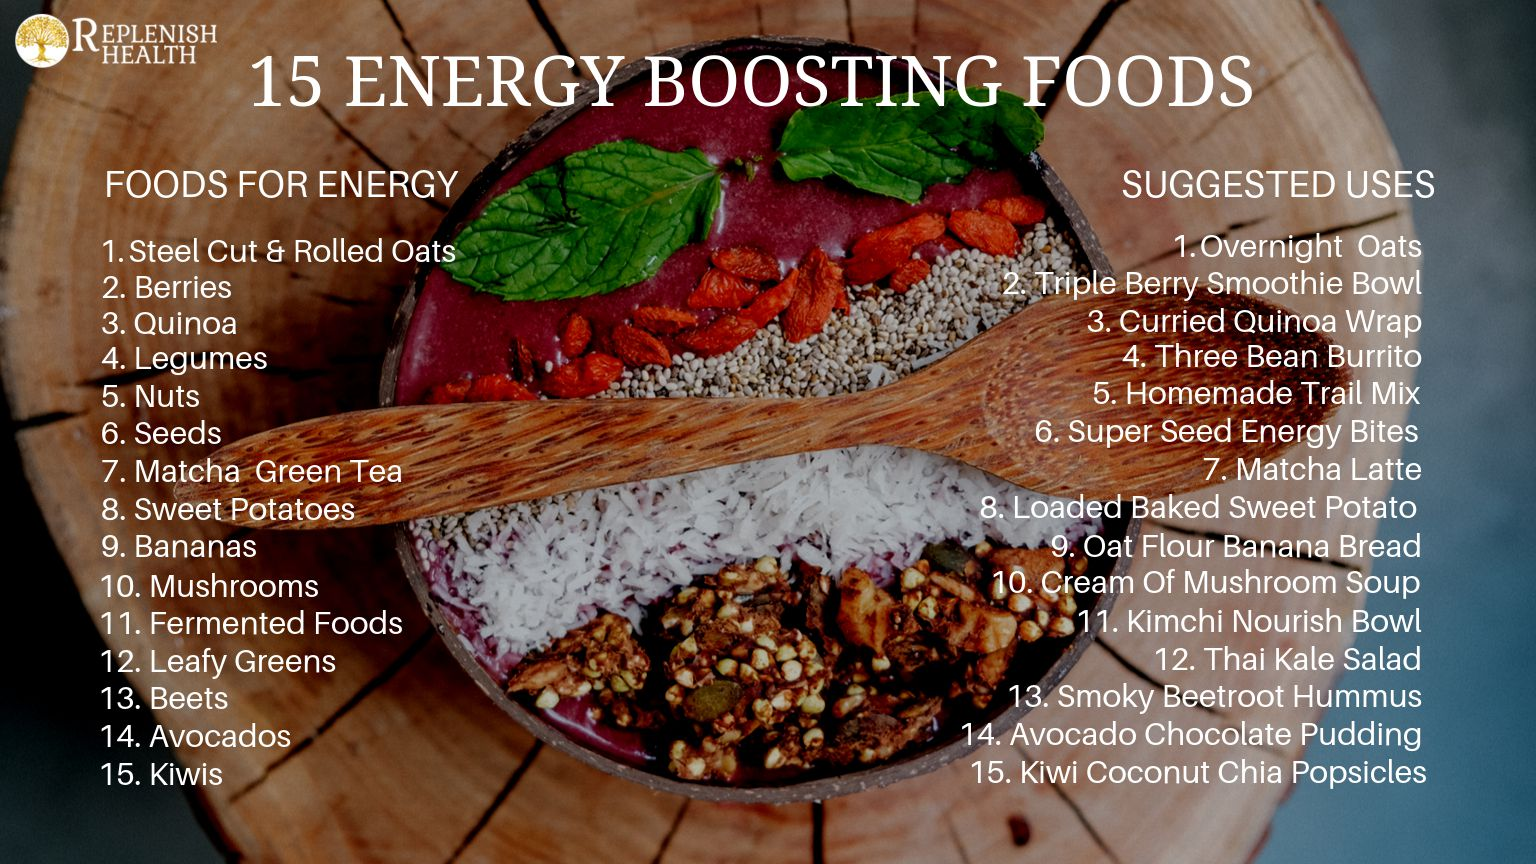 An image of a list of 15 energy boosting foods and 15 suggested ways to use them.